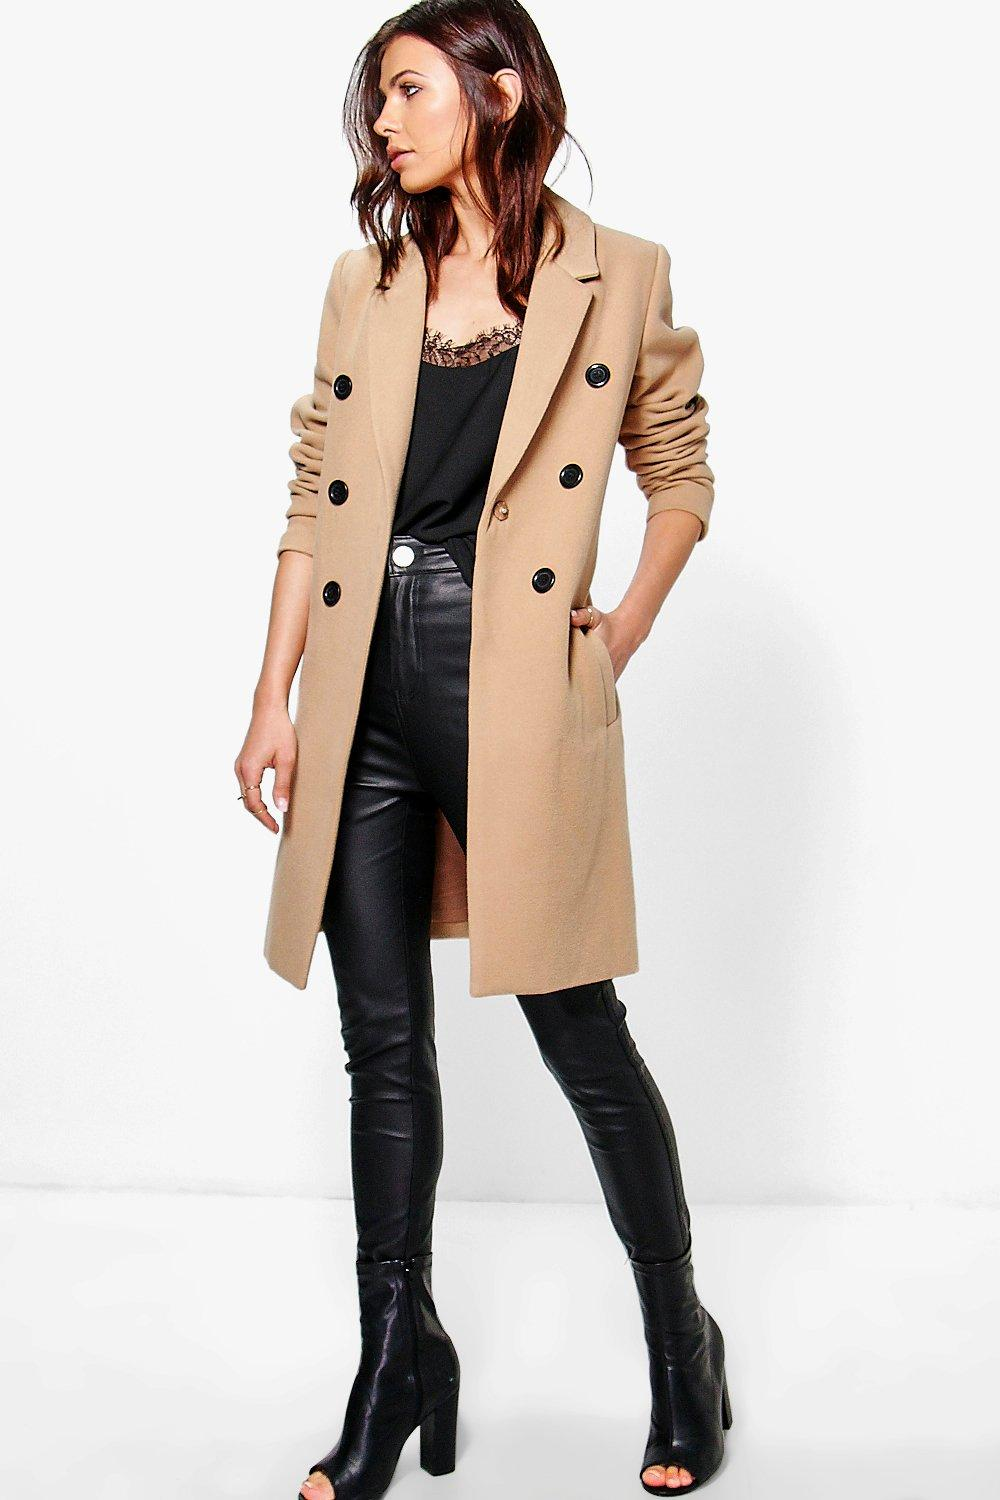 Double Breasted Coat - camel